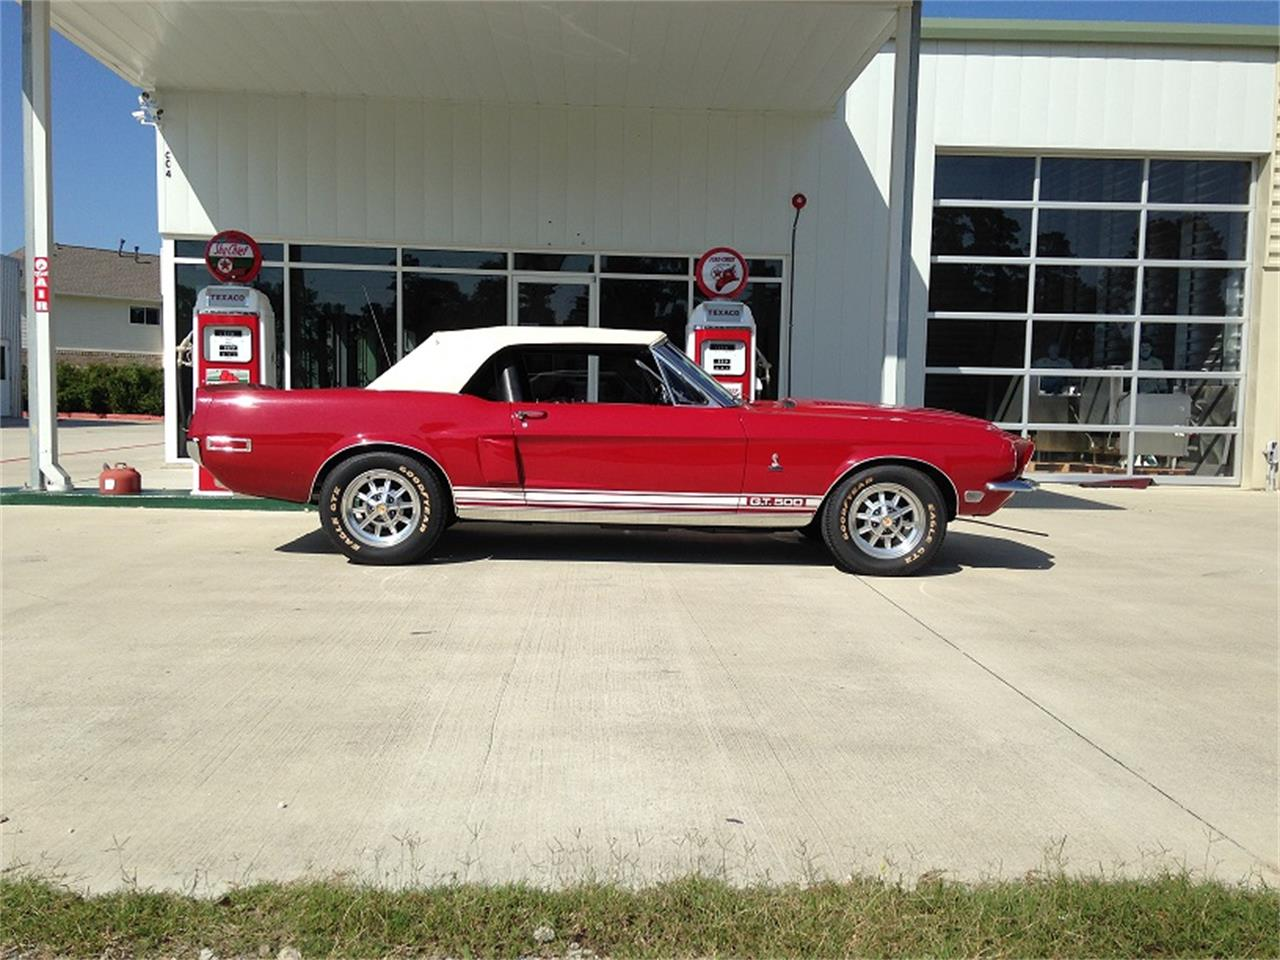 Private Car Sale In Houston Tx: 1968 Shelby GT500 For Sale